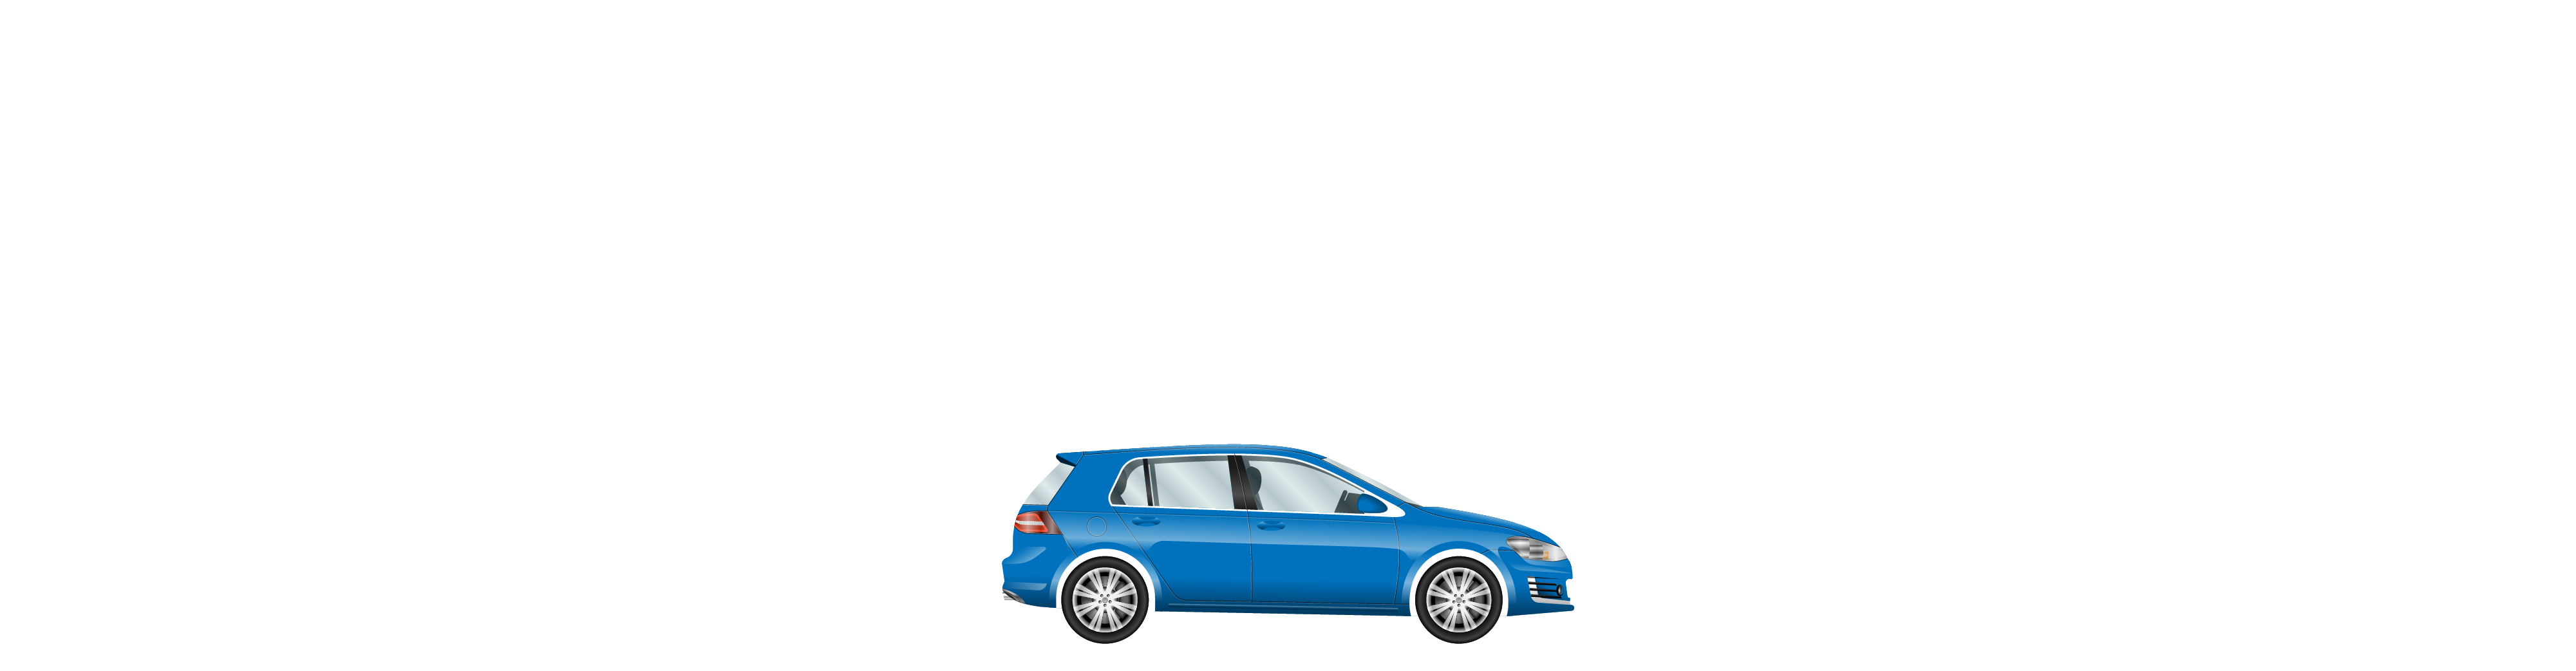 Car driving through City background image